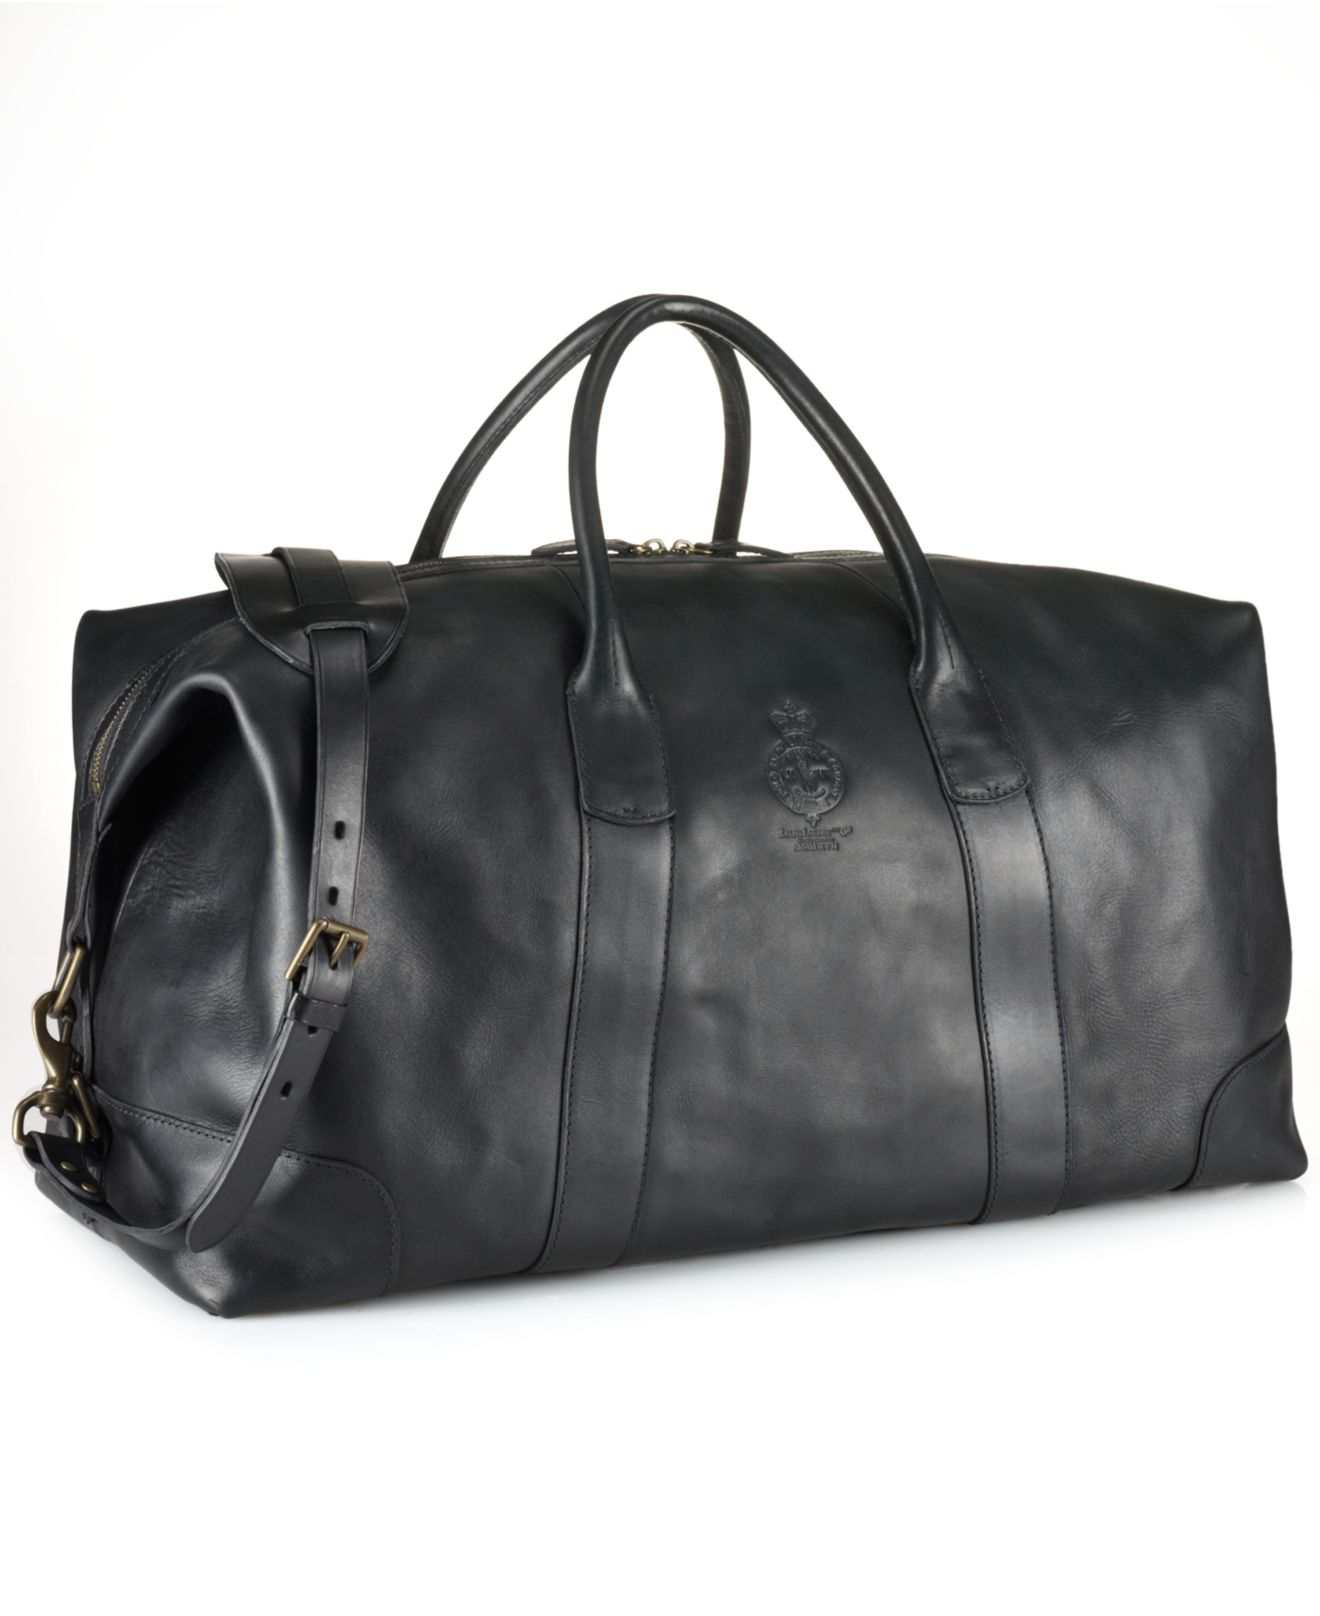 Lyst - Polo Ralph Lauren Core Leather Duffle Bag in Black for Men 475edc21d4a78